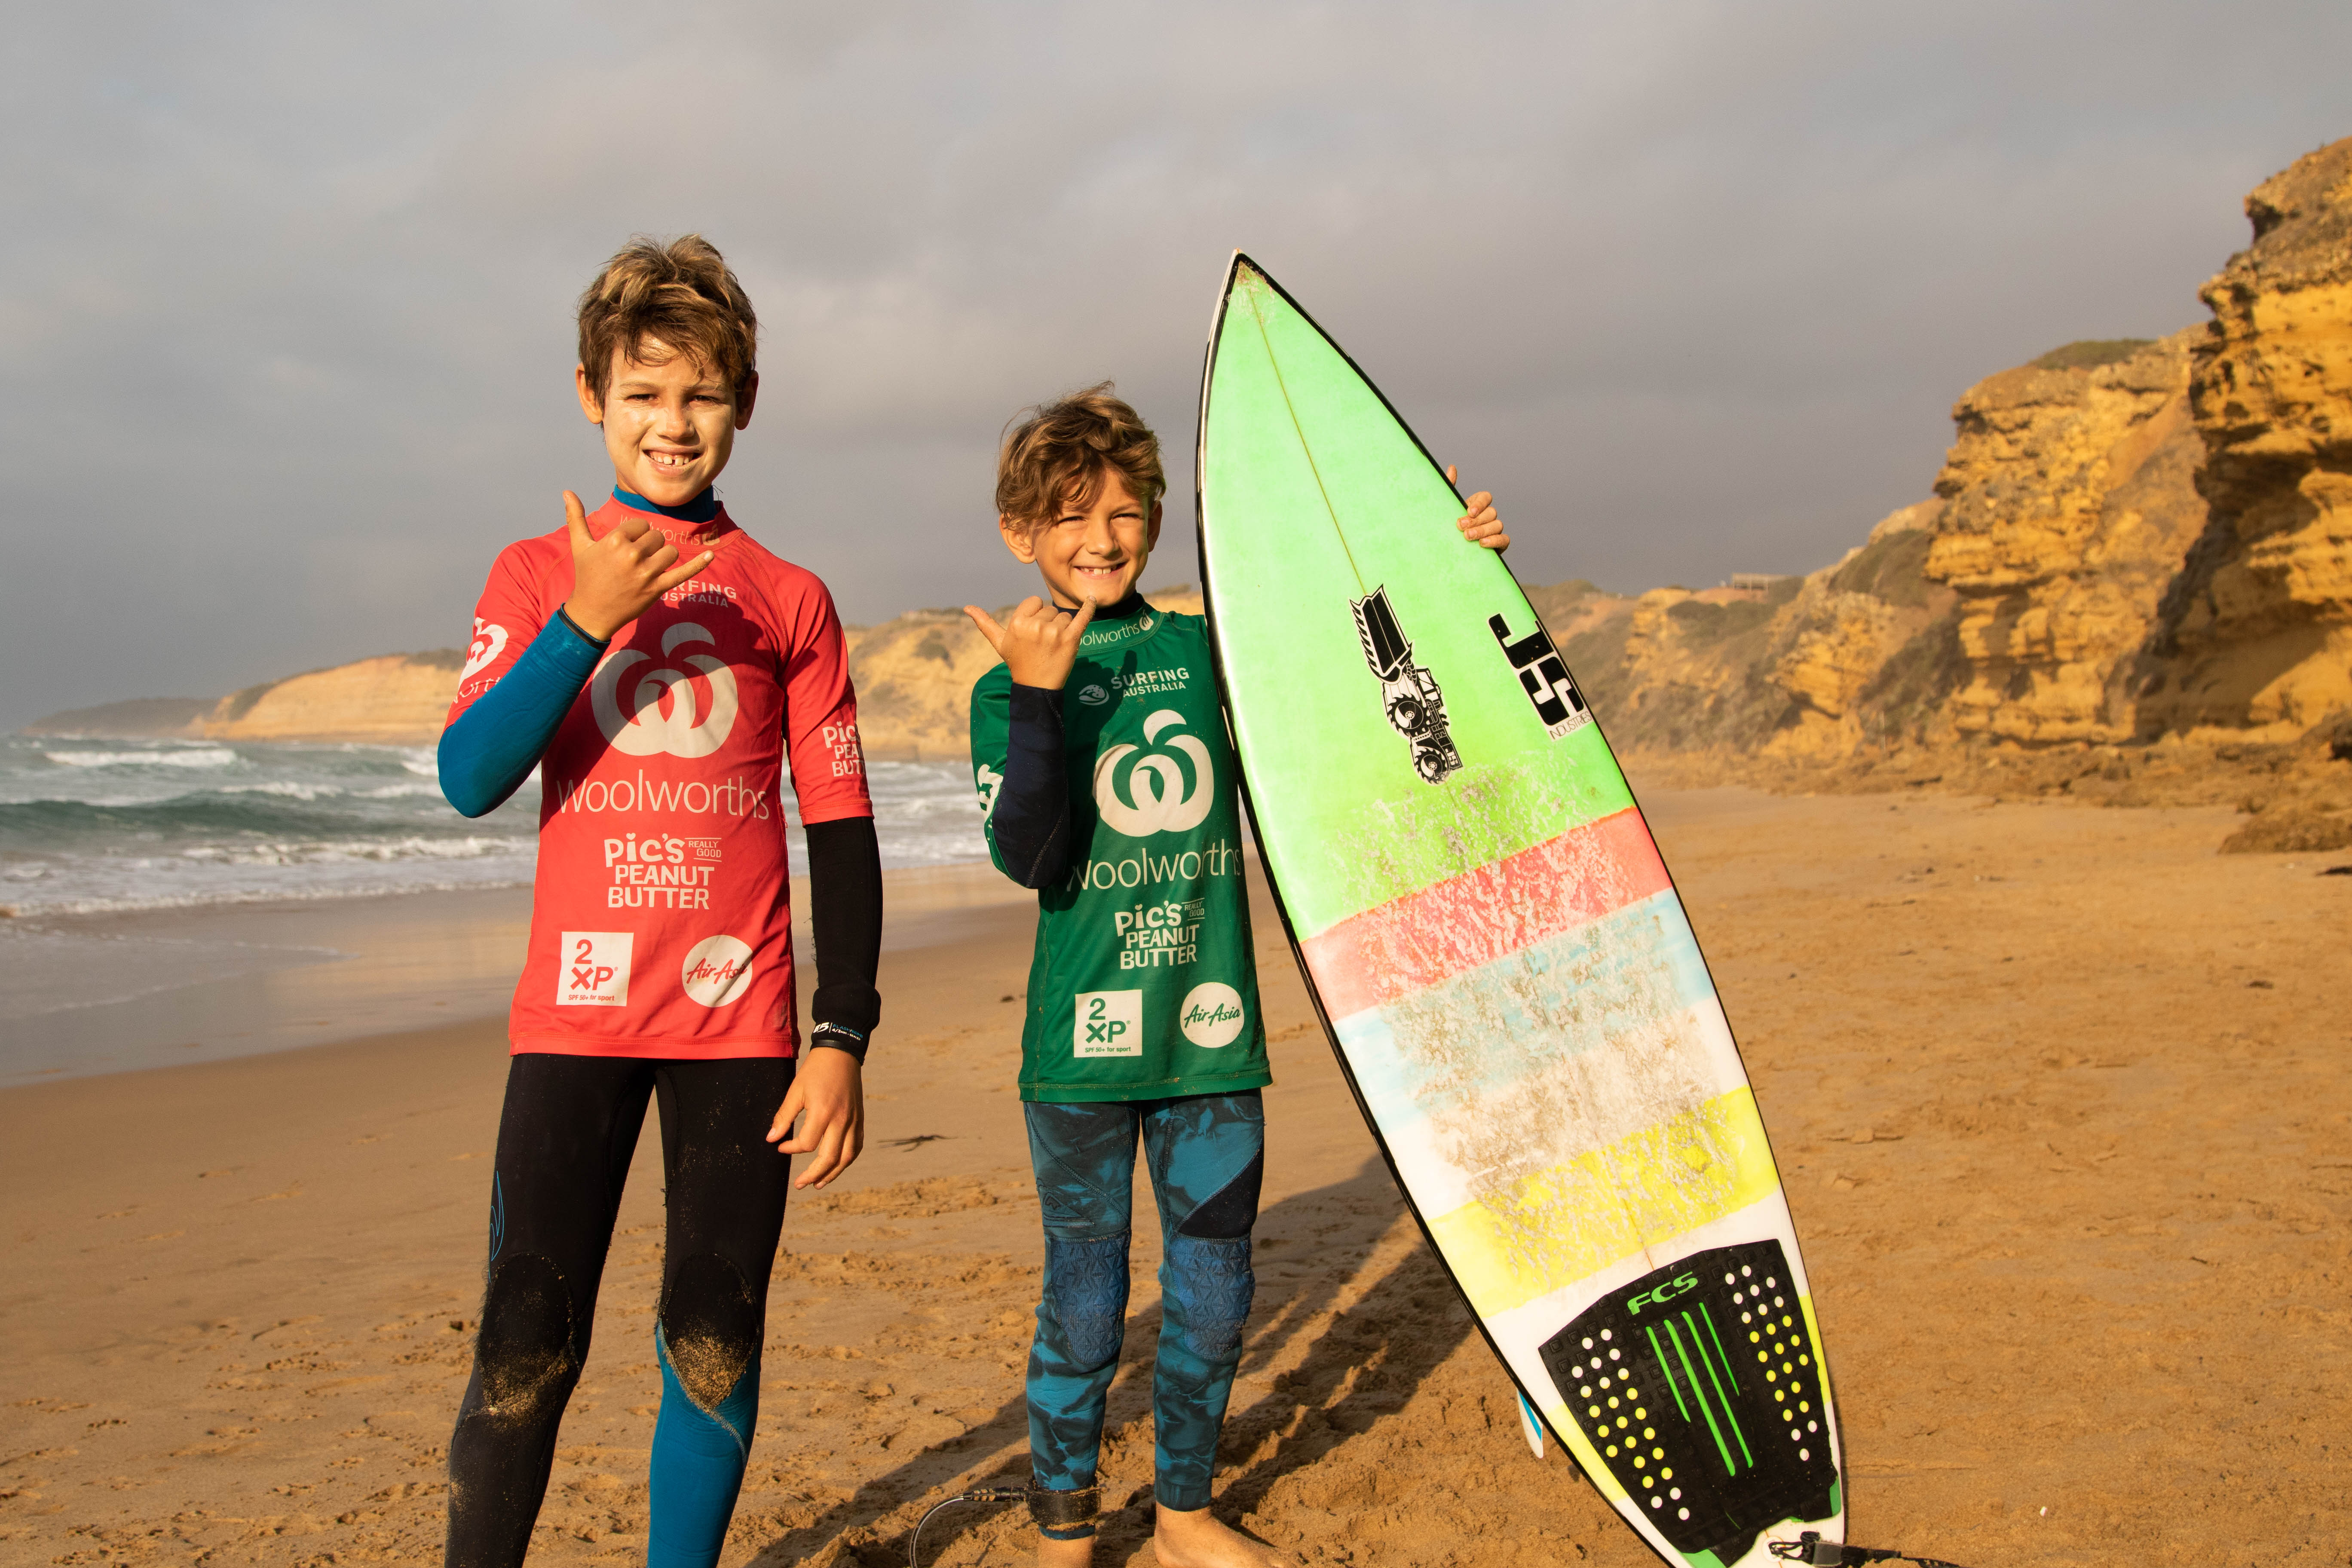 Groms(2) Woolworths Surfer Grom Comp2019 Zl 005